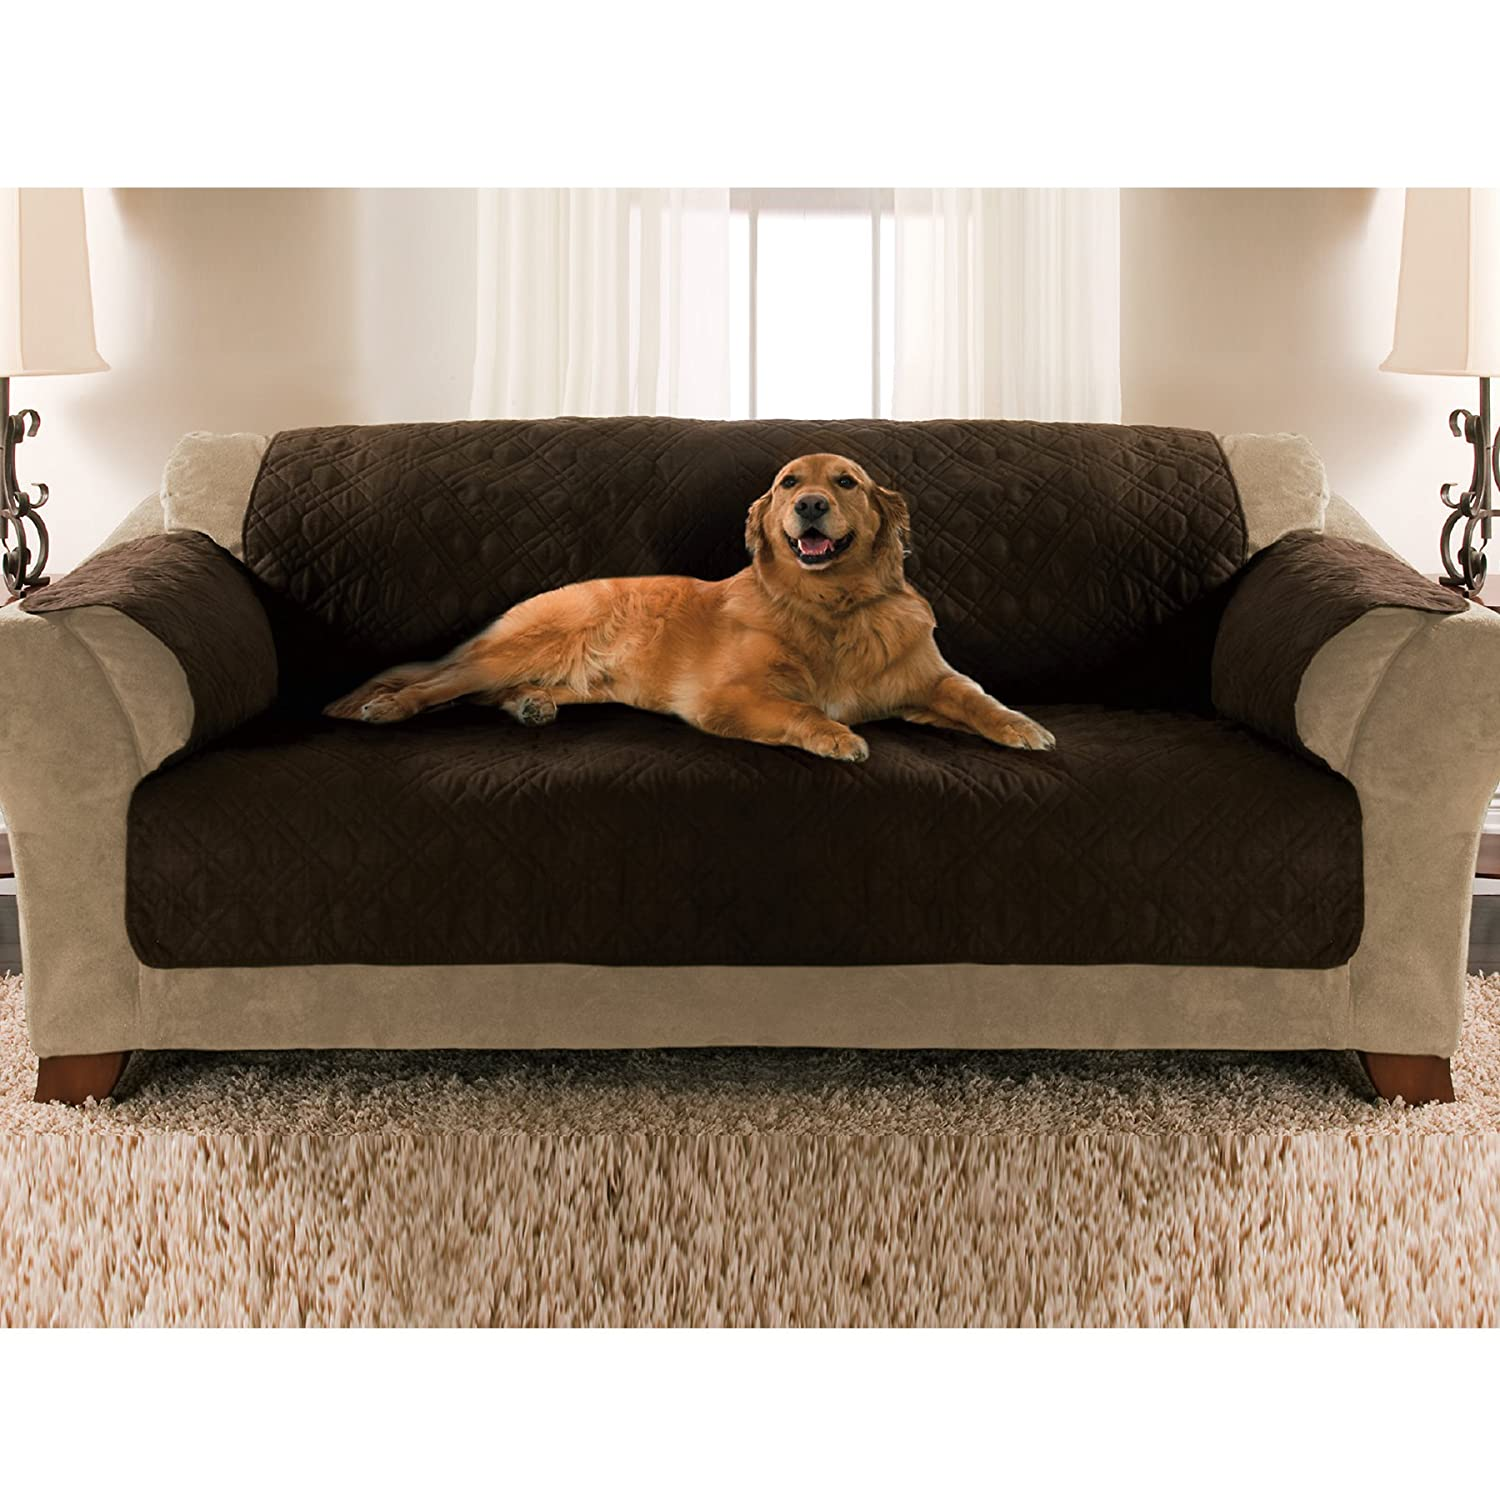 Amazon Yes Pets Sofa Size Quilted Micro Suede Furniture